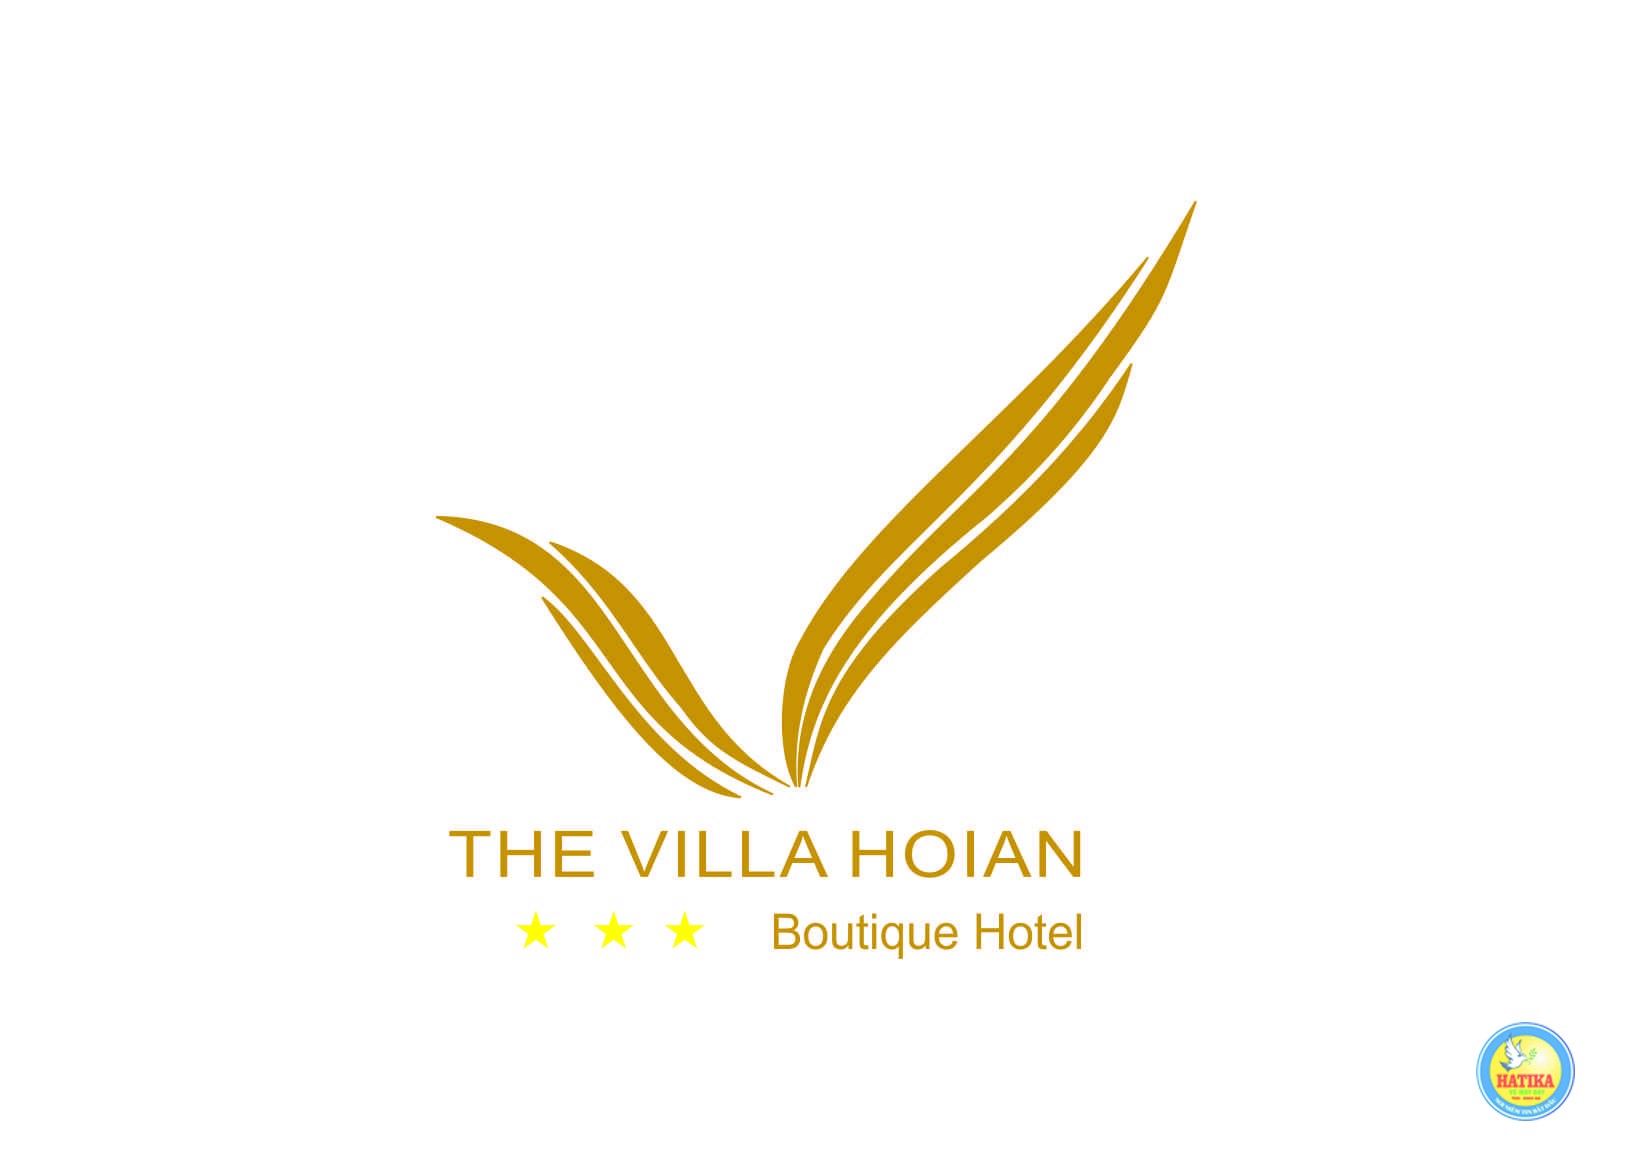 THE VILLA HOIAN – Boutique Hotel